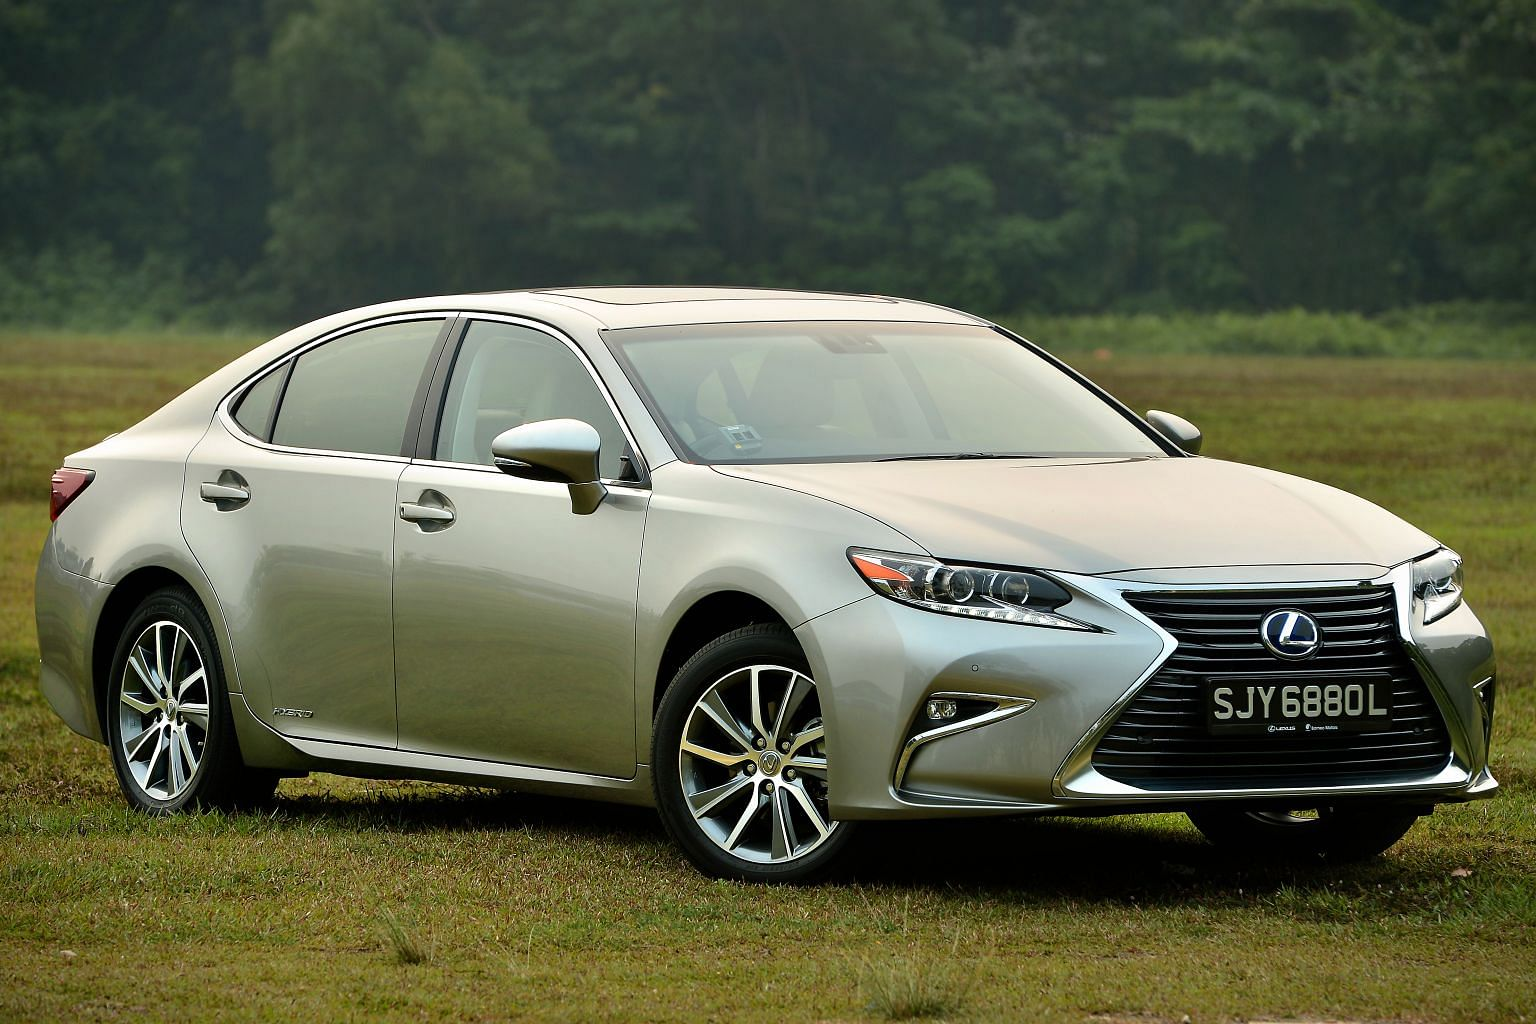 The Lexus ES Hybrid now looks sportier and its interior features more wood and leather.